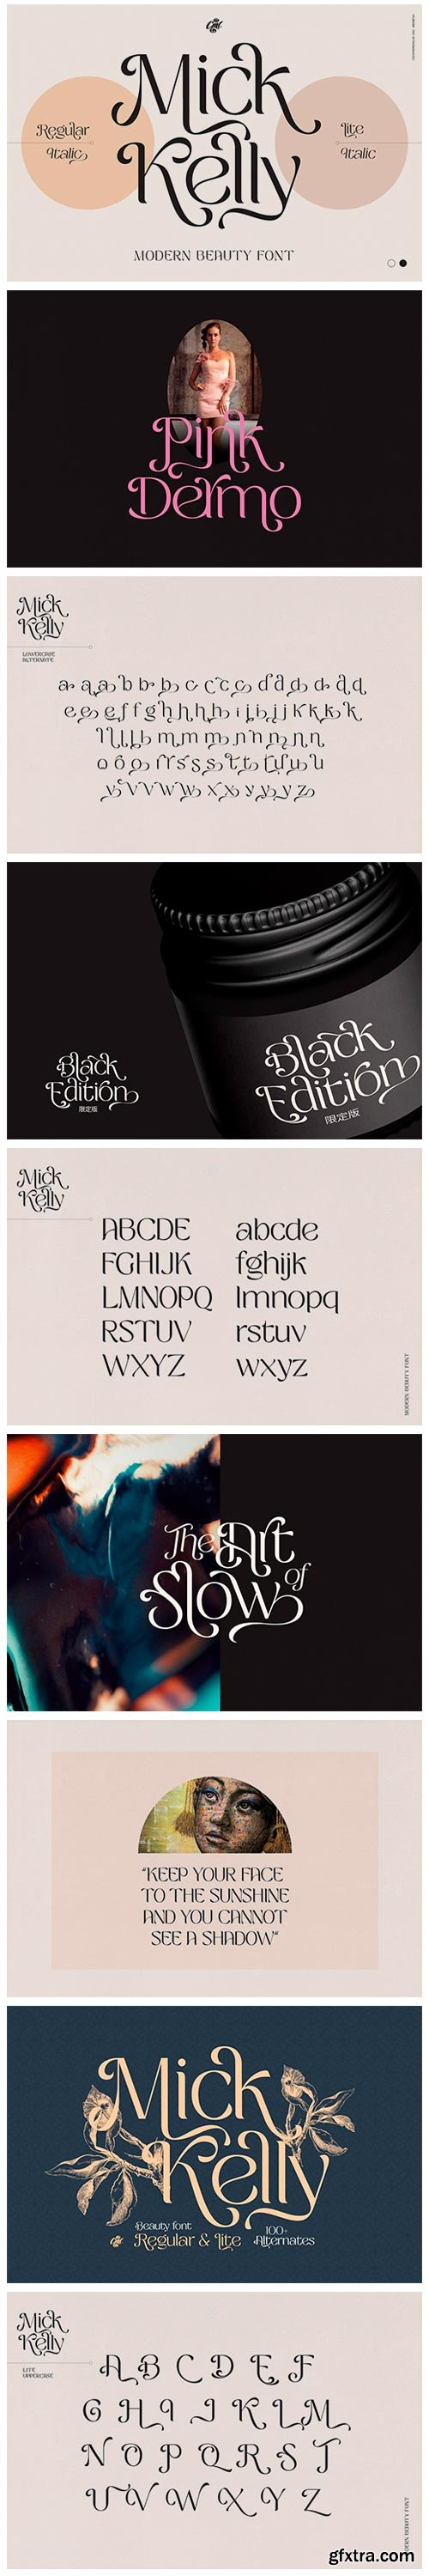 CM - Mick Kelly - Beauty Font 6089997